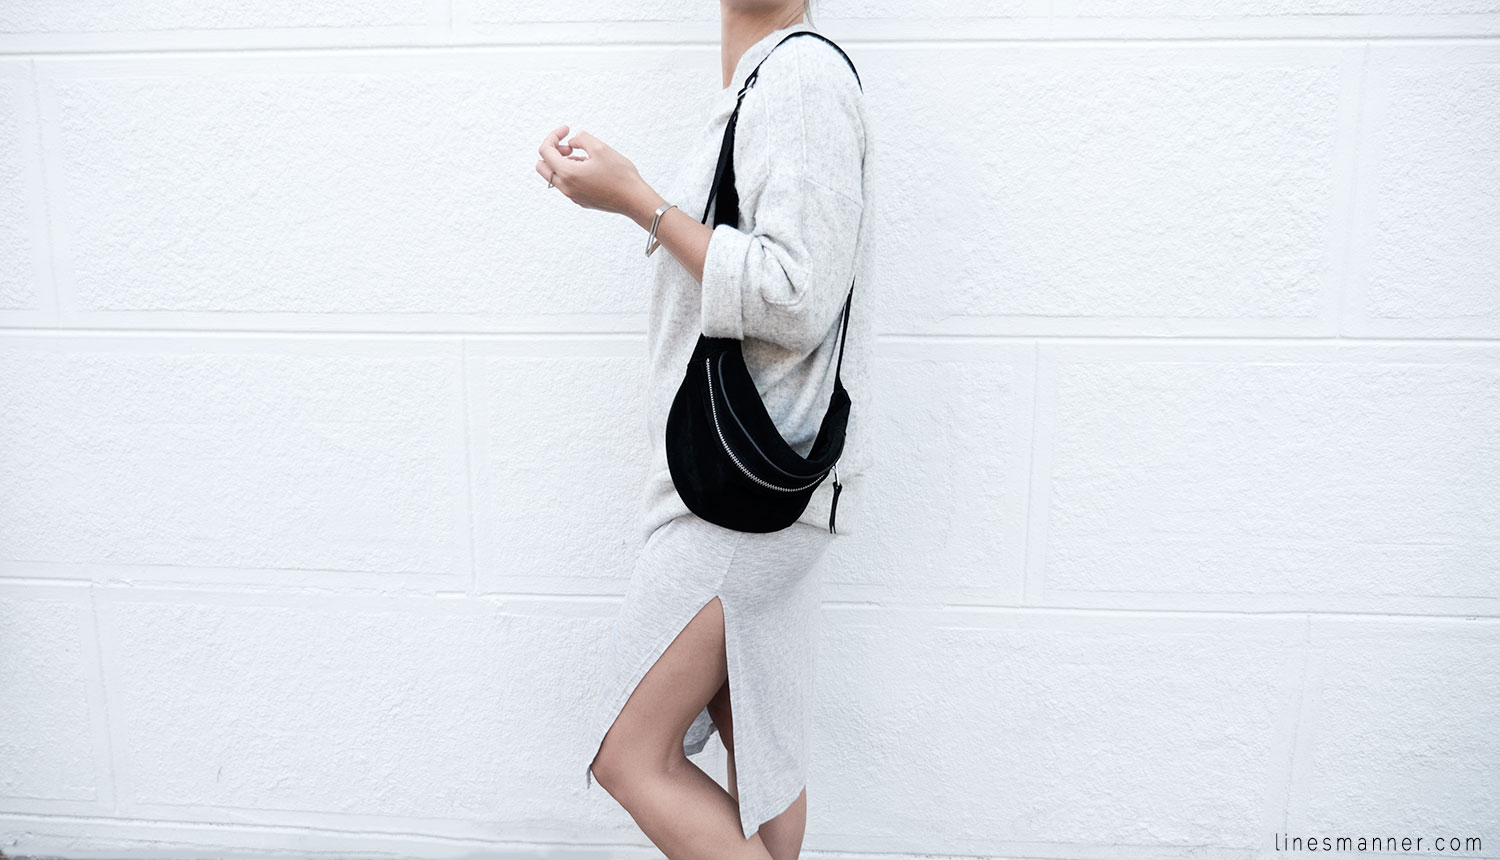 Lines-Manner-Fashion-Collaboration-The_Demeler-Monochrome-Grey_on_Grey-Fresh-Brightly-Outfit-Simplicity-Details-Trend-Minimalist-Flowy-Layering-Sleeves-Sweater_Dress-3